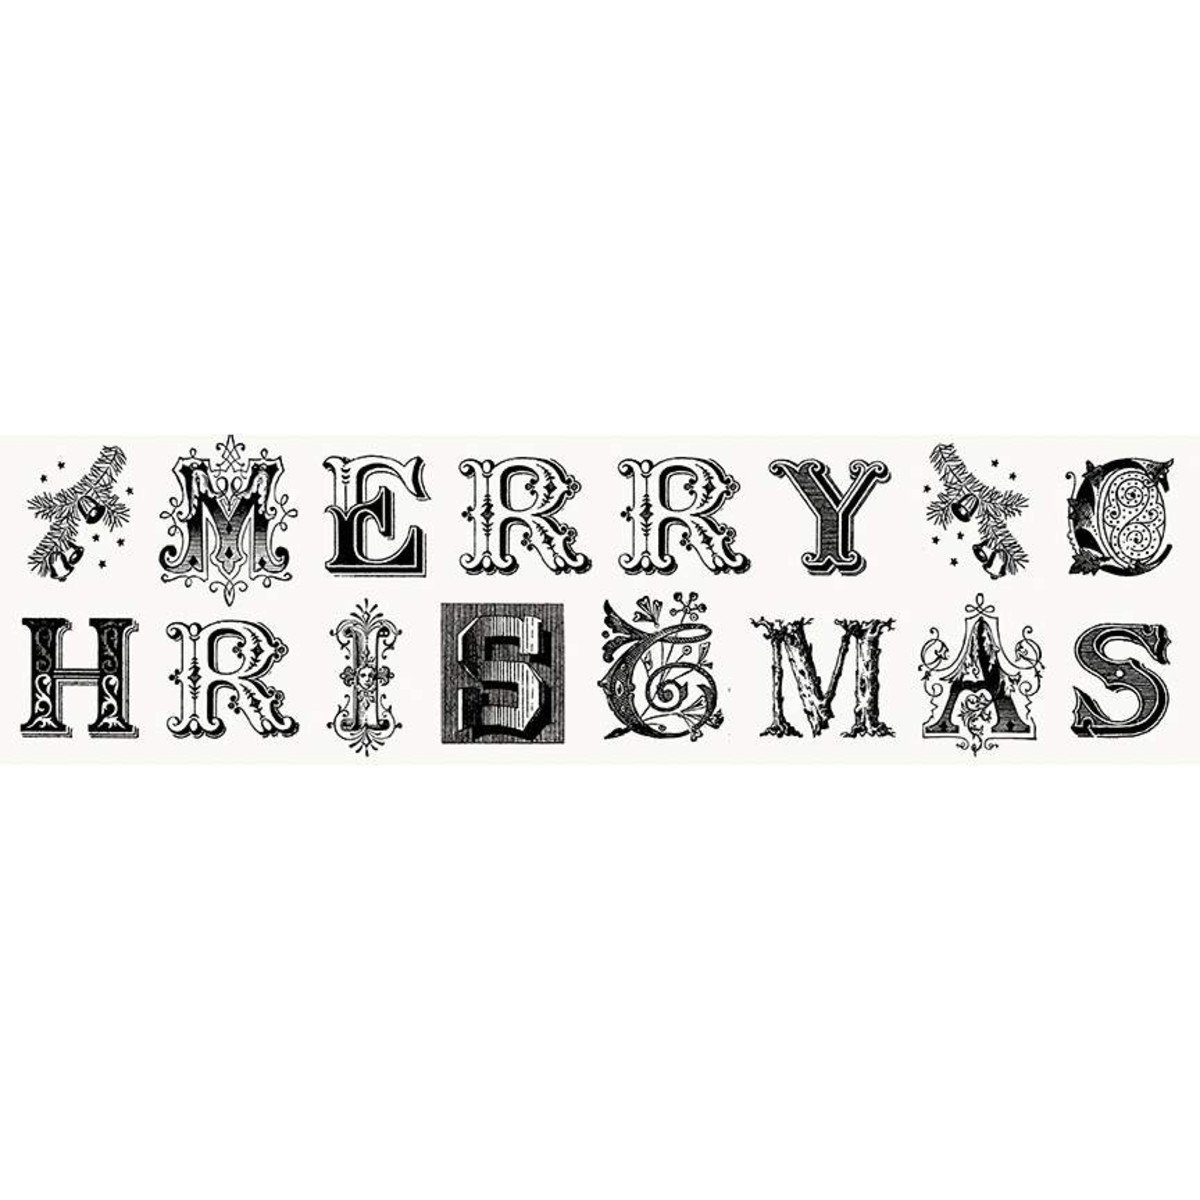 All about Christmas Typography White Panel-12.5 inches